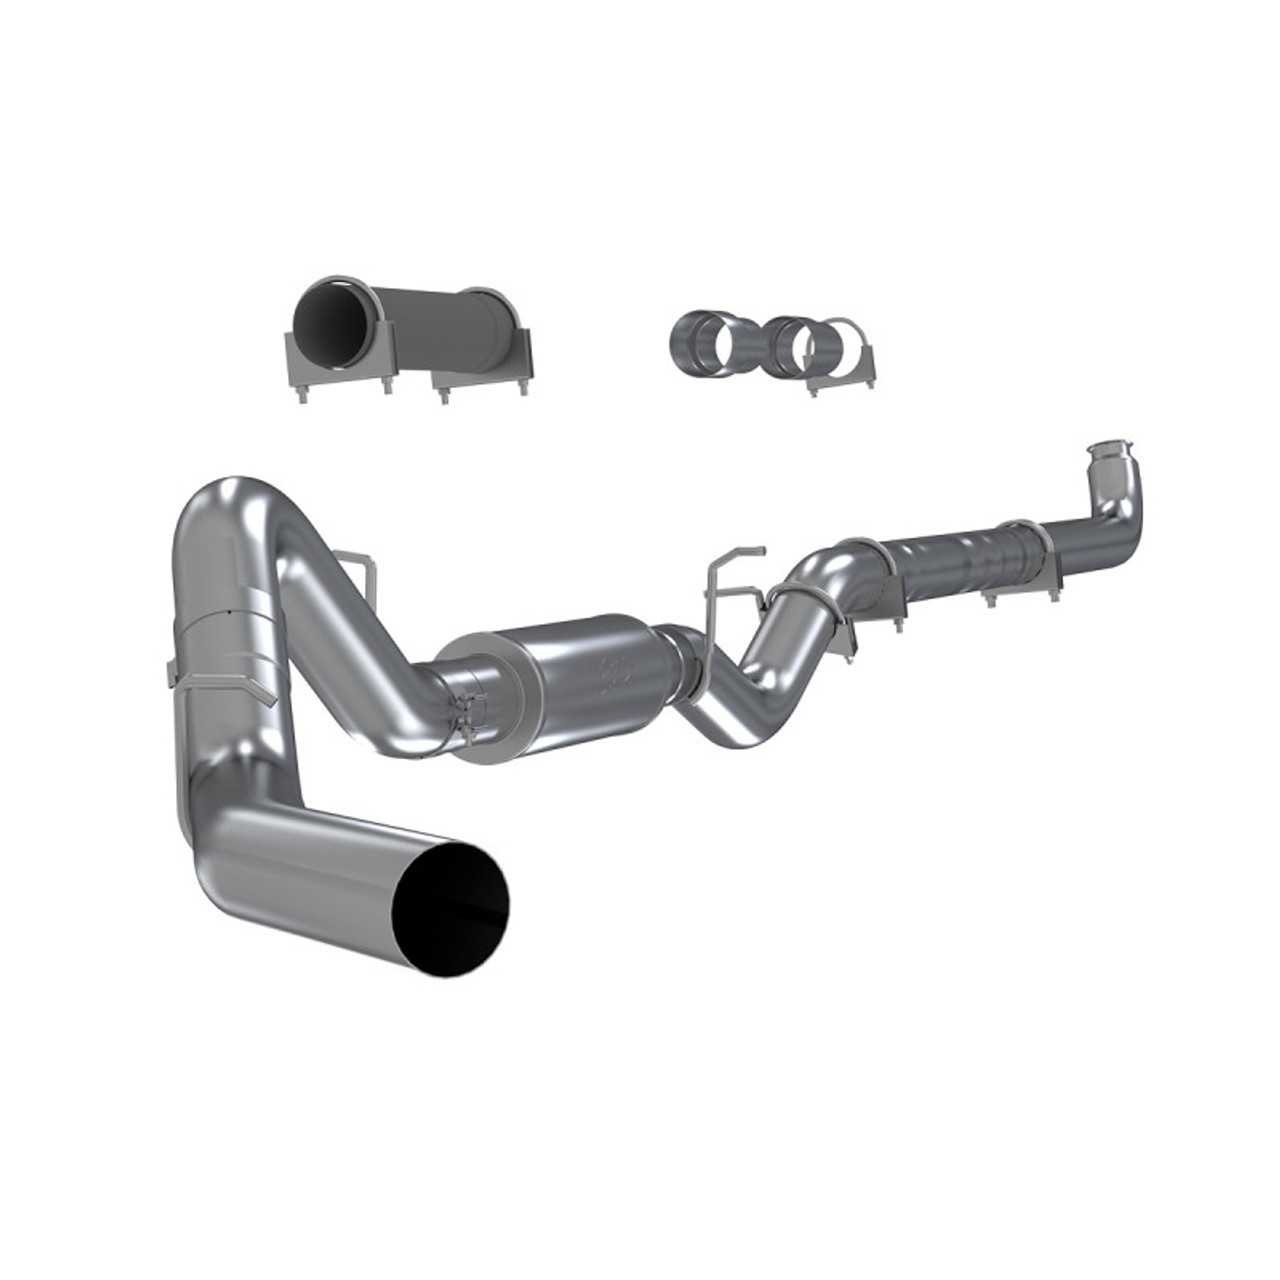 """MBRP 4"""" EXHAUST 01-07 CHEVY GMC DURAMAX DIESEL 6.6L LB7 LLY LBZ W STAINLESS TIP - S6004P T5051"""